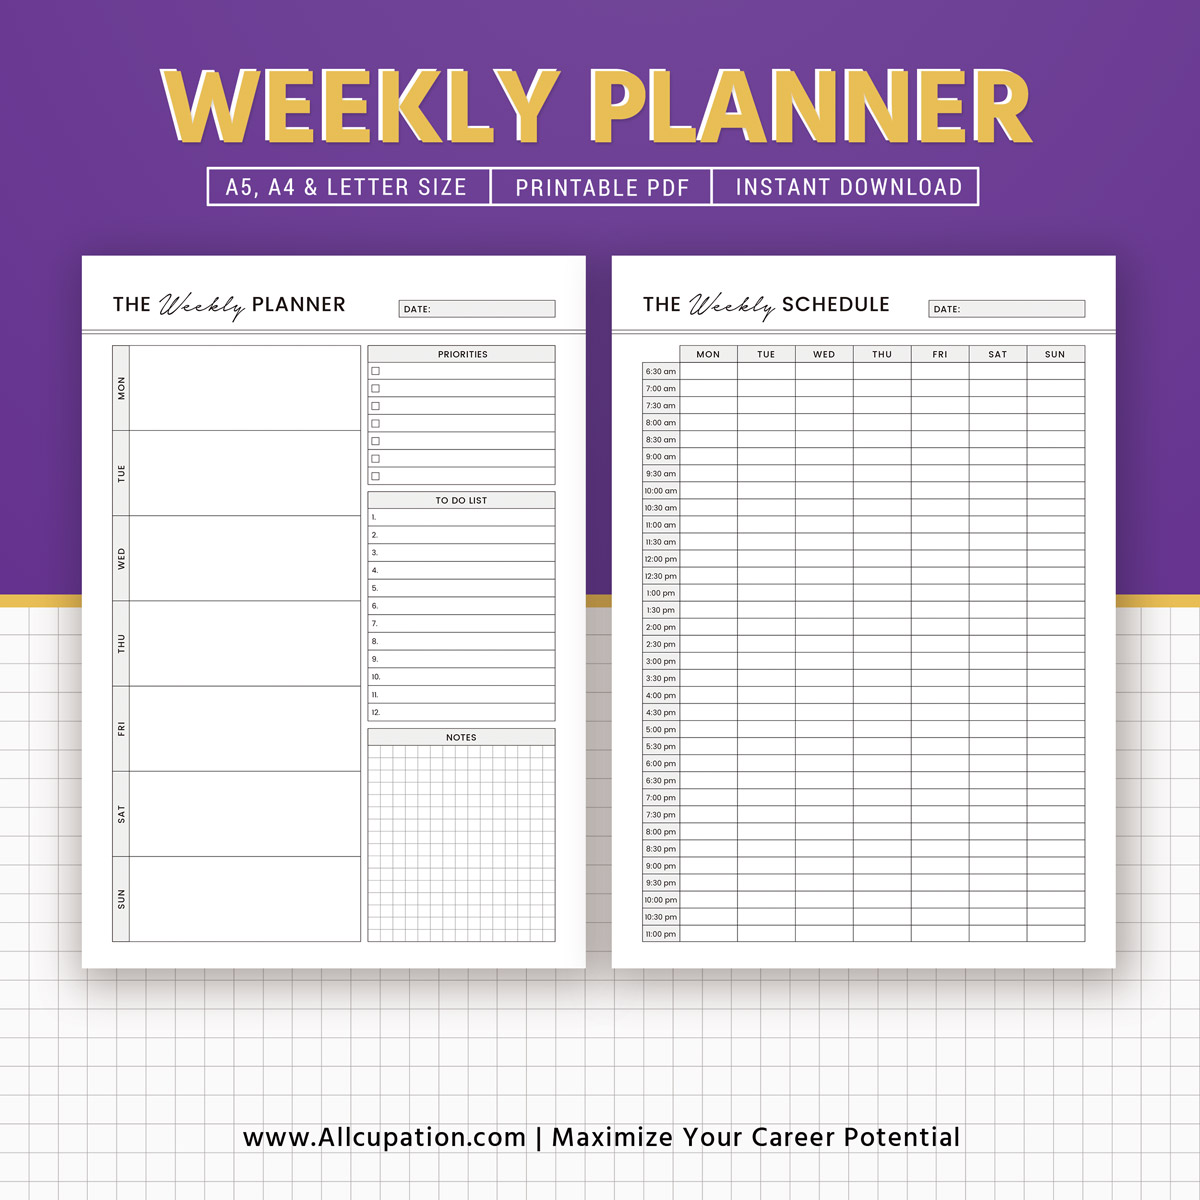 image relating to Weekly Agenda Printable titled Printable Weekly Planner 2019, Weekly Agenda, Weekly Organizer, A5 Inserts, A4, Letter Dimension, Planner Laptop computer, Planner Style and design, Perfect Planner, Filofax